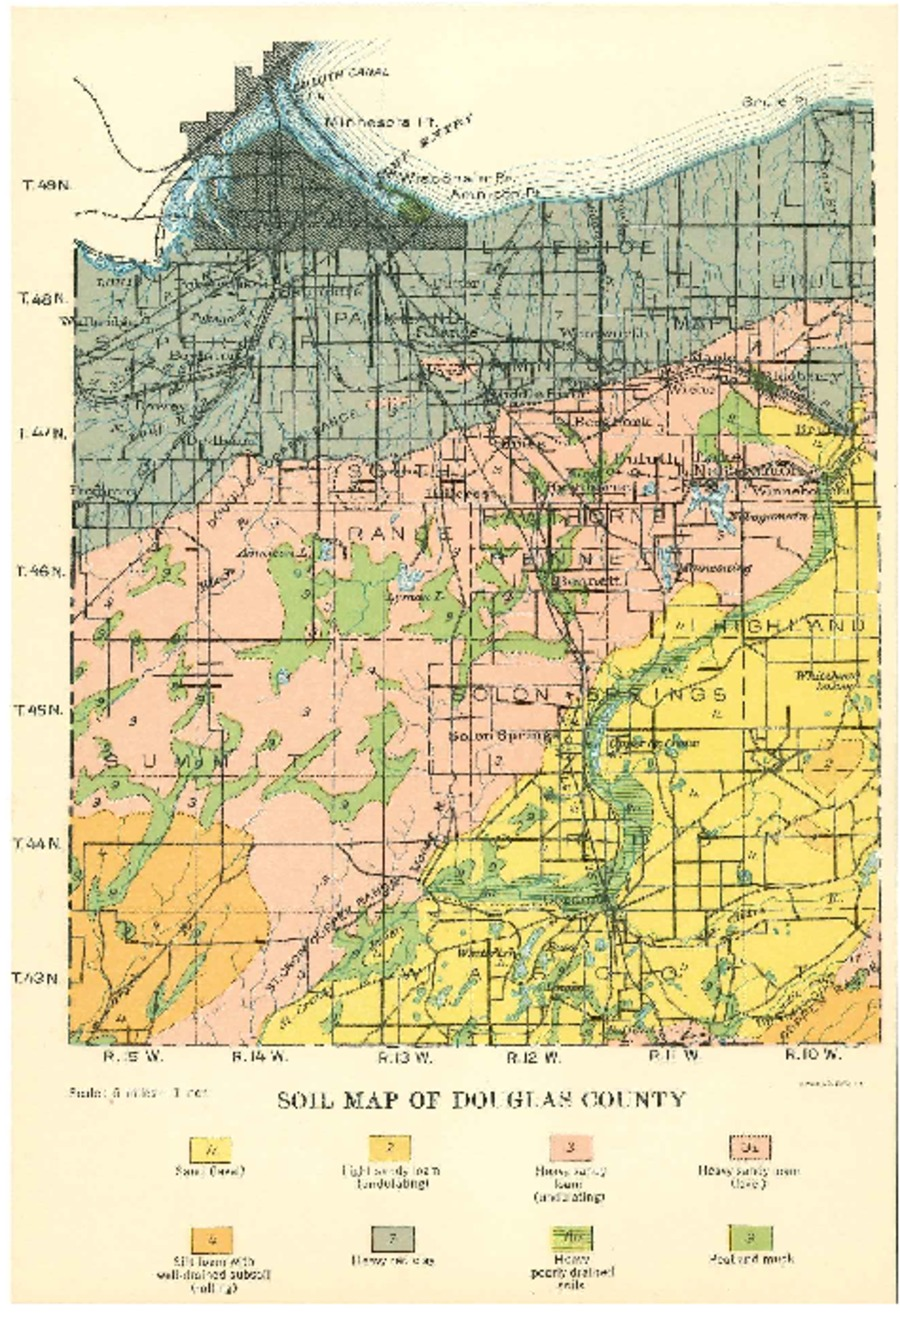 Wisconsin Geological & Natural History Survey » Soil Map of Douglas on